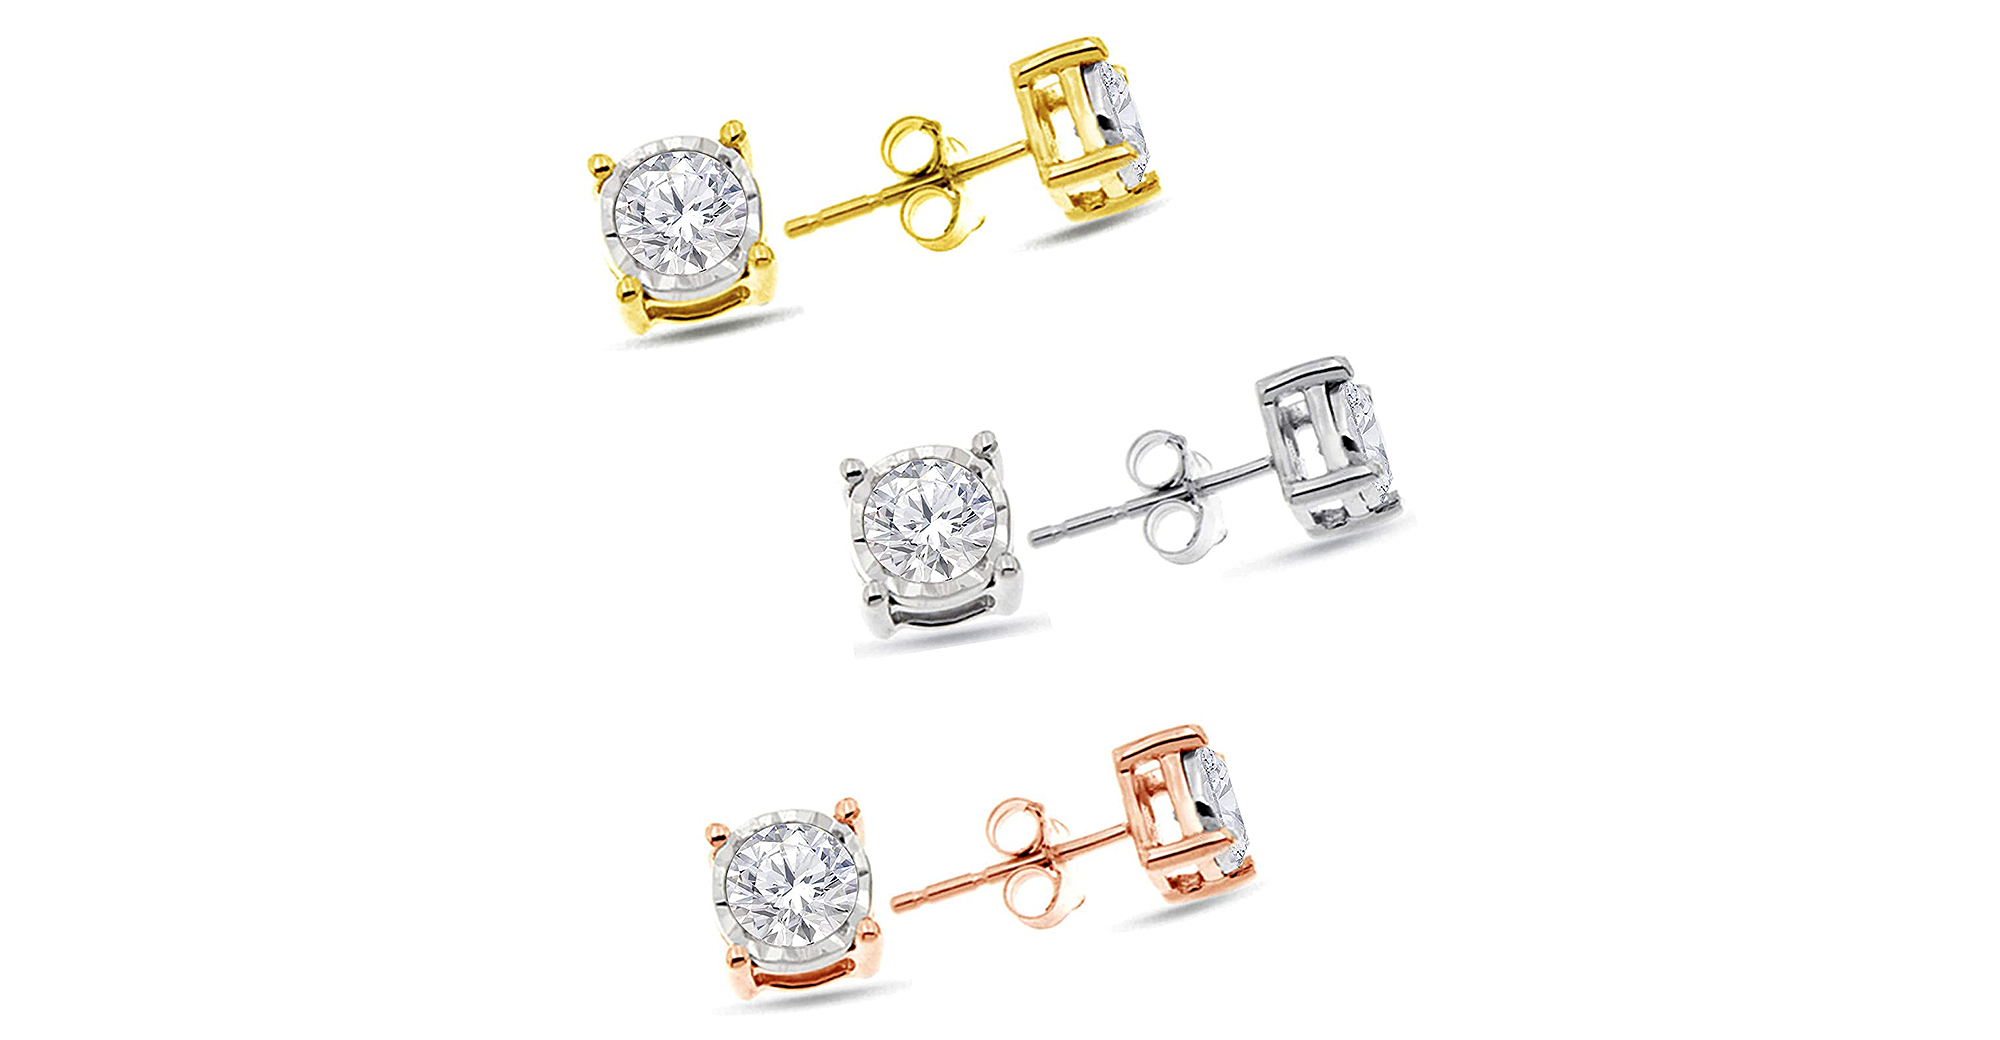 Black Friday Sale! These Diamond Earrings Are Up to 51% Off for 6 Hours